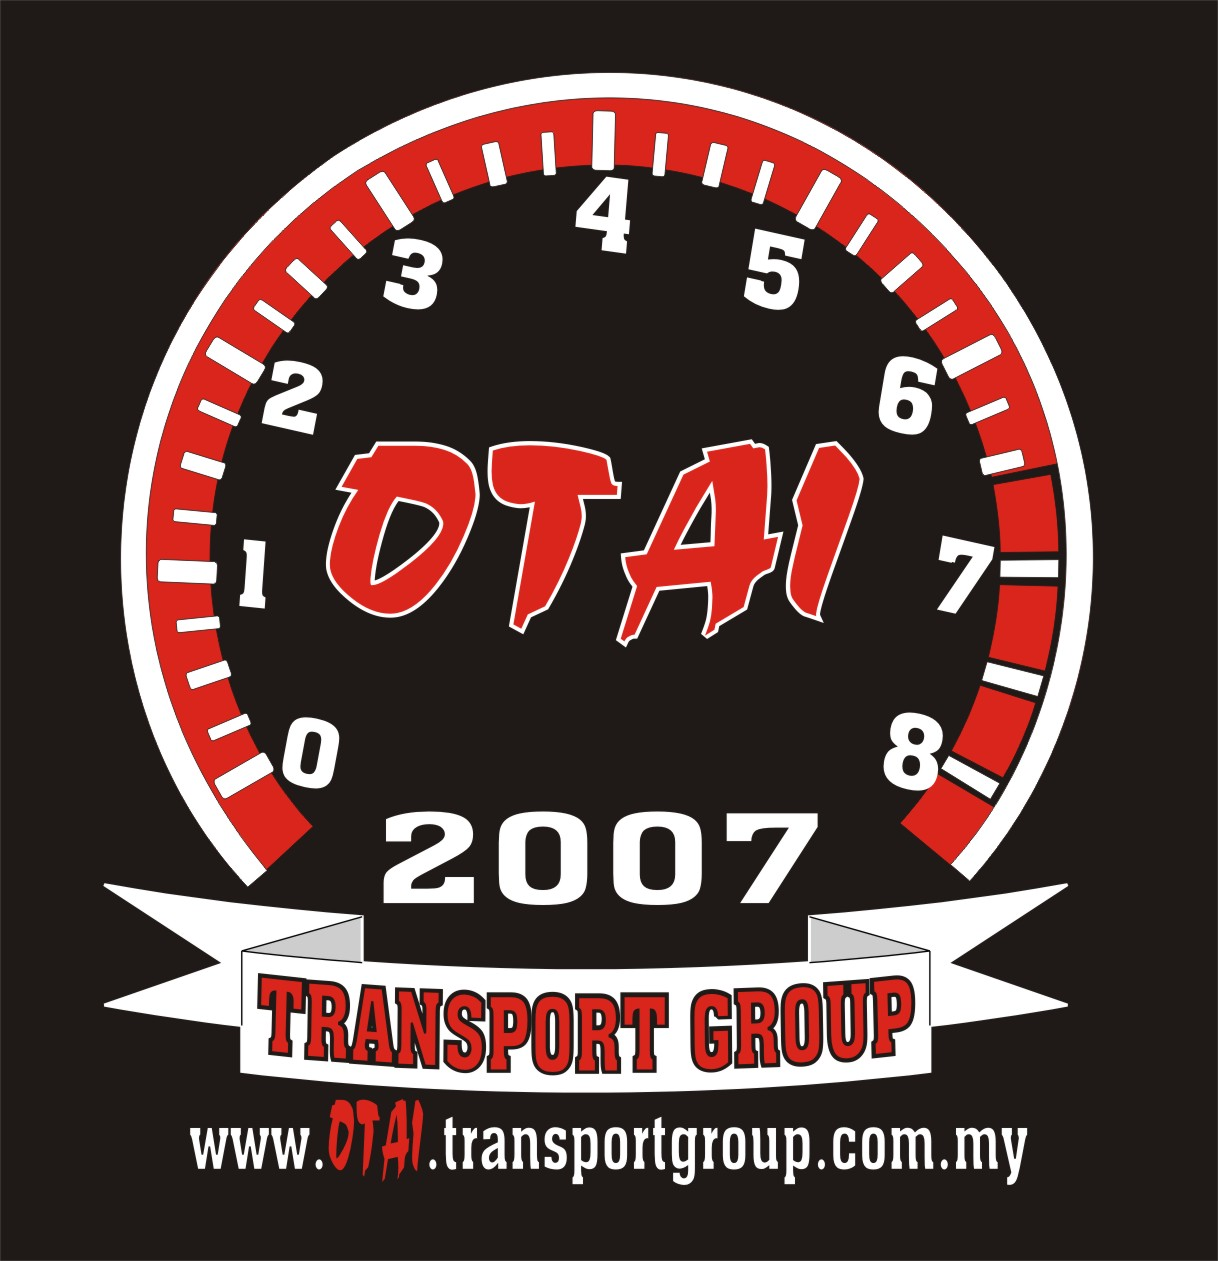 OTAI TRANSPORT GROUP